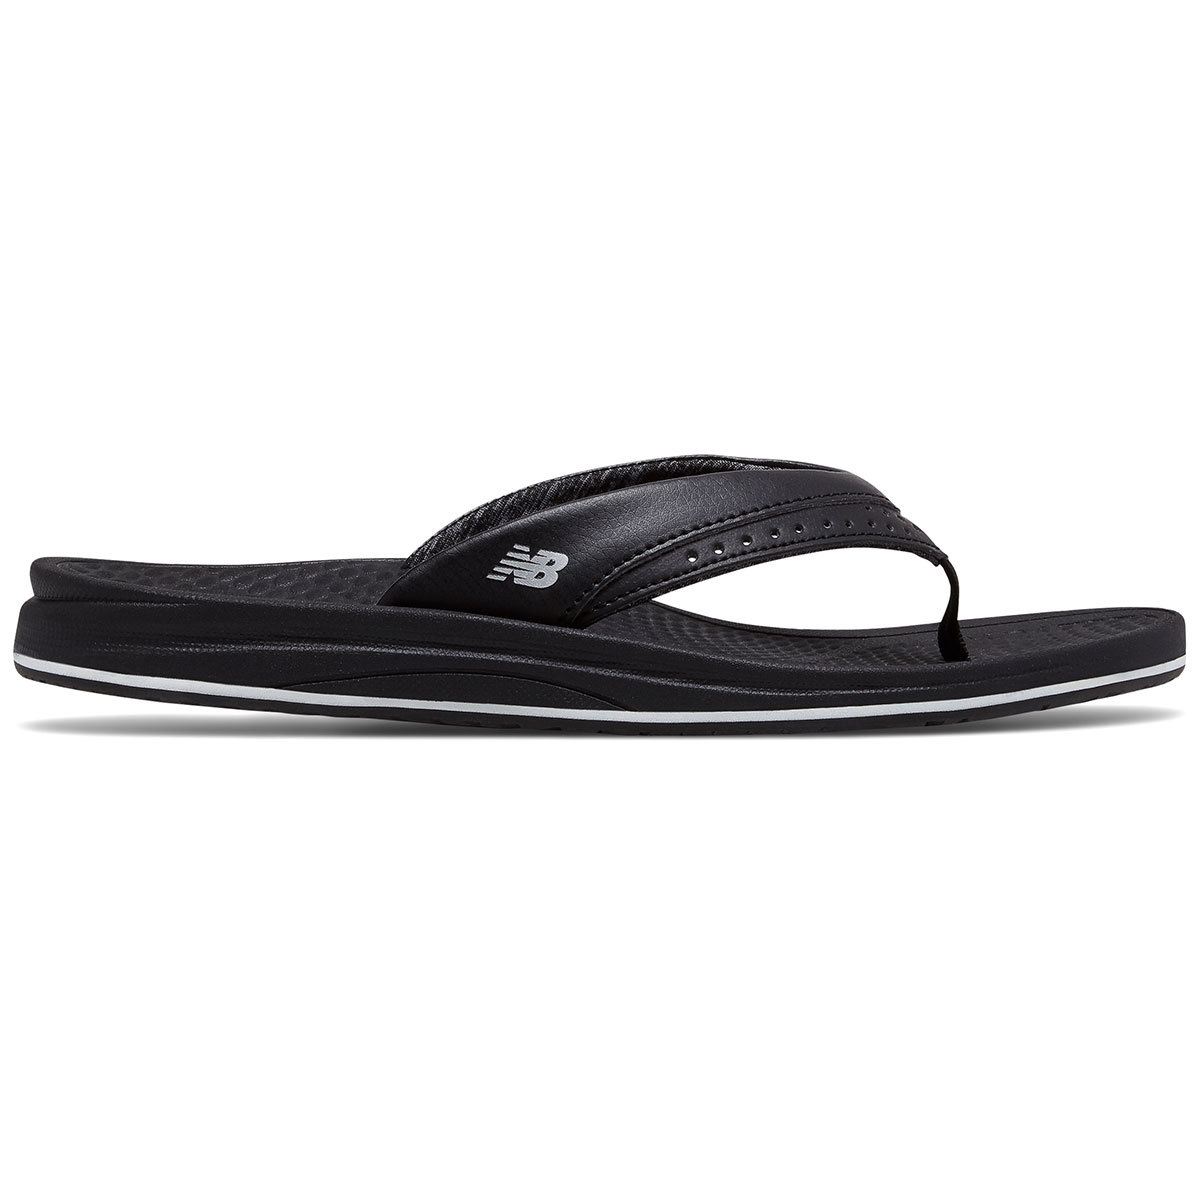 New Balance Women's Renew Thong Sandals - Black, 11